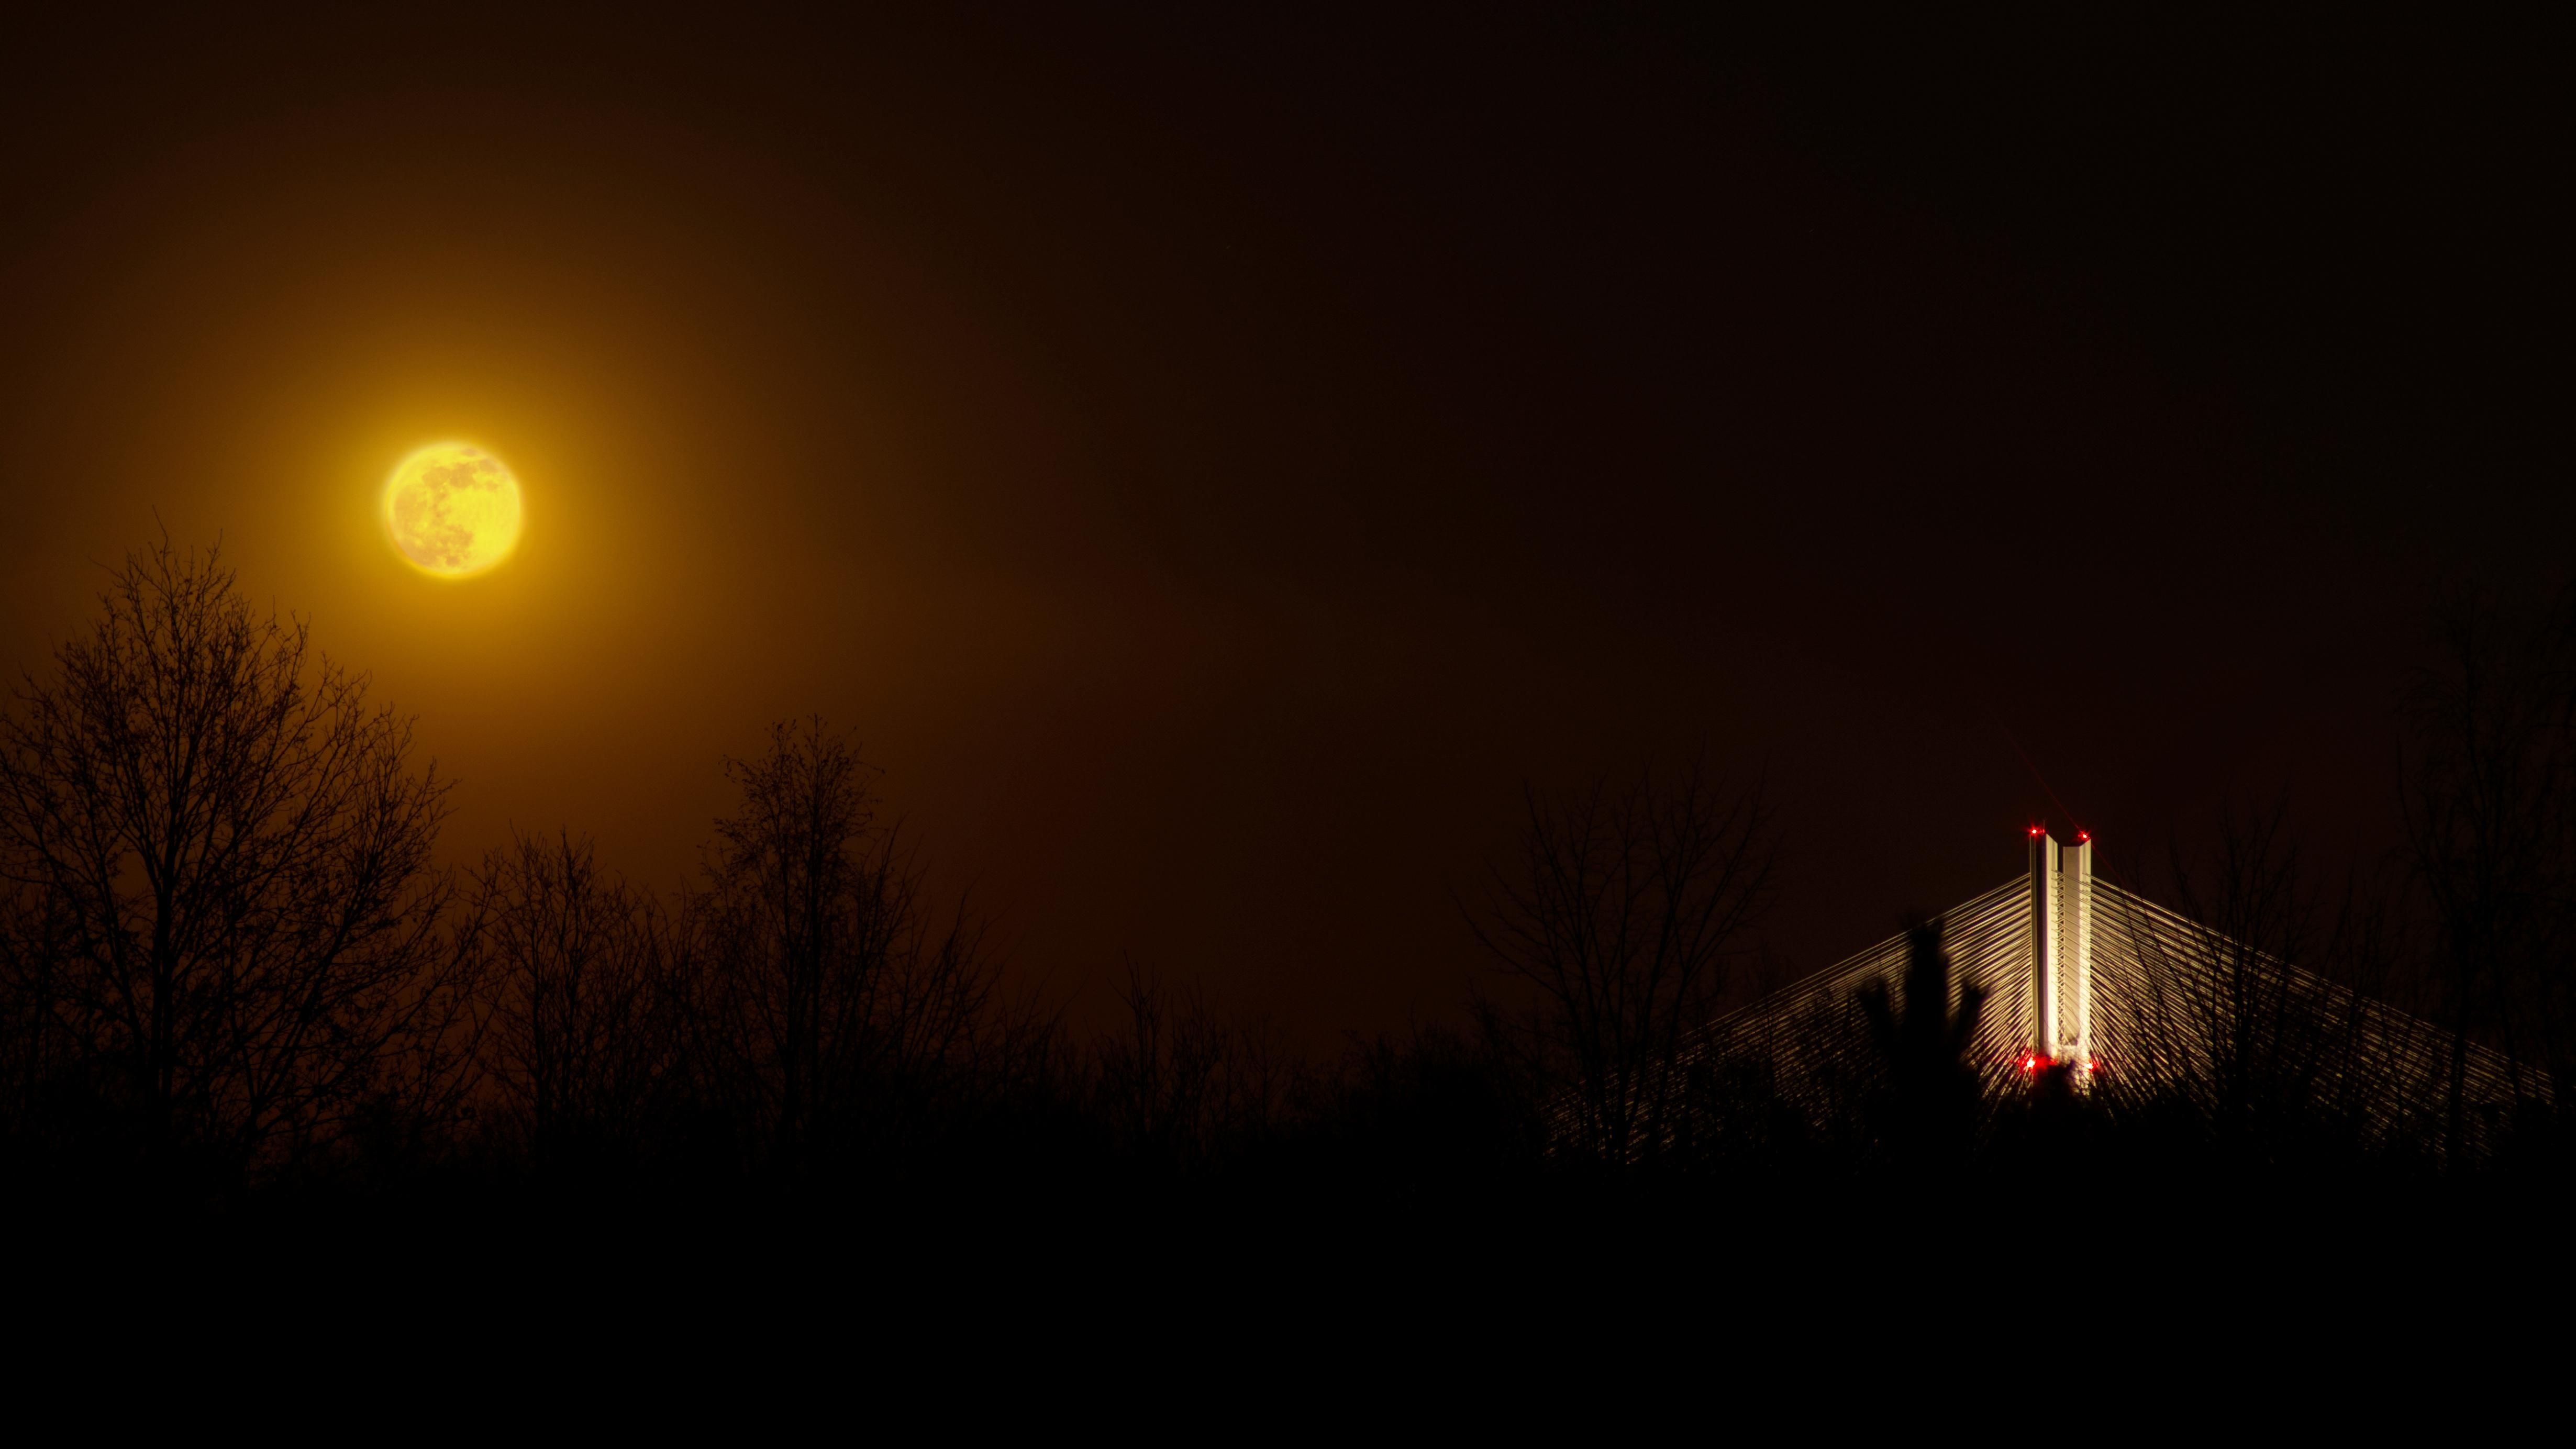 ITAP of a moon and a bridge from my balcony at night.#PHOTO #CAPTURE #NATURE #INCREDIBLE